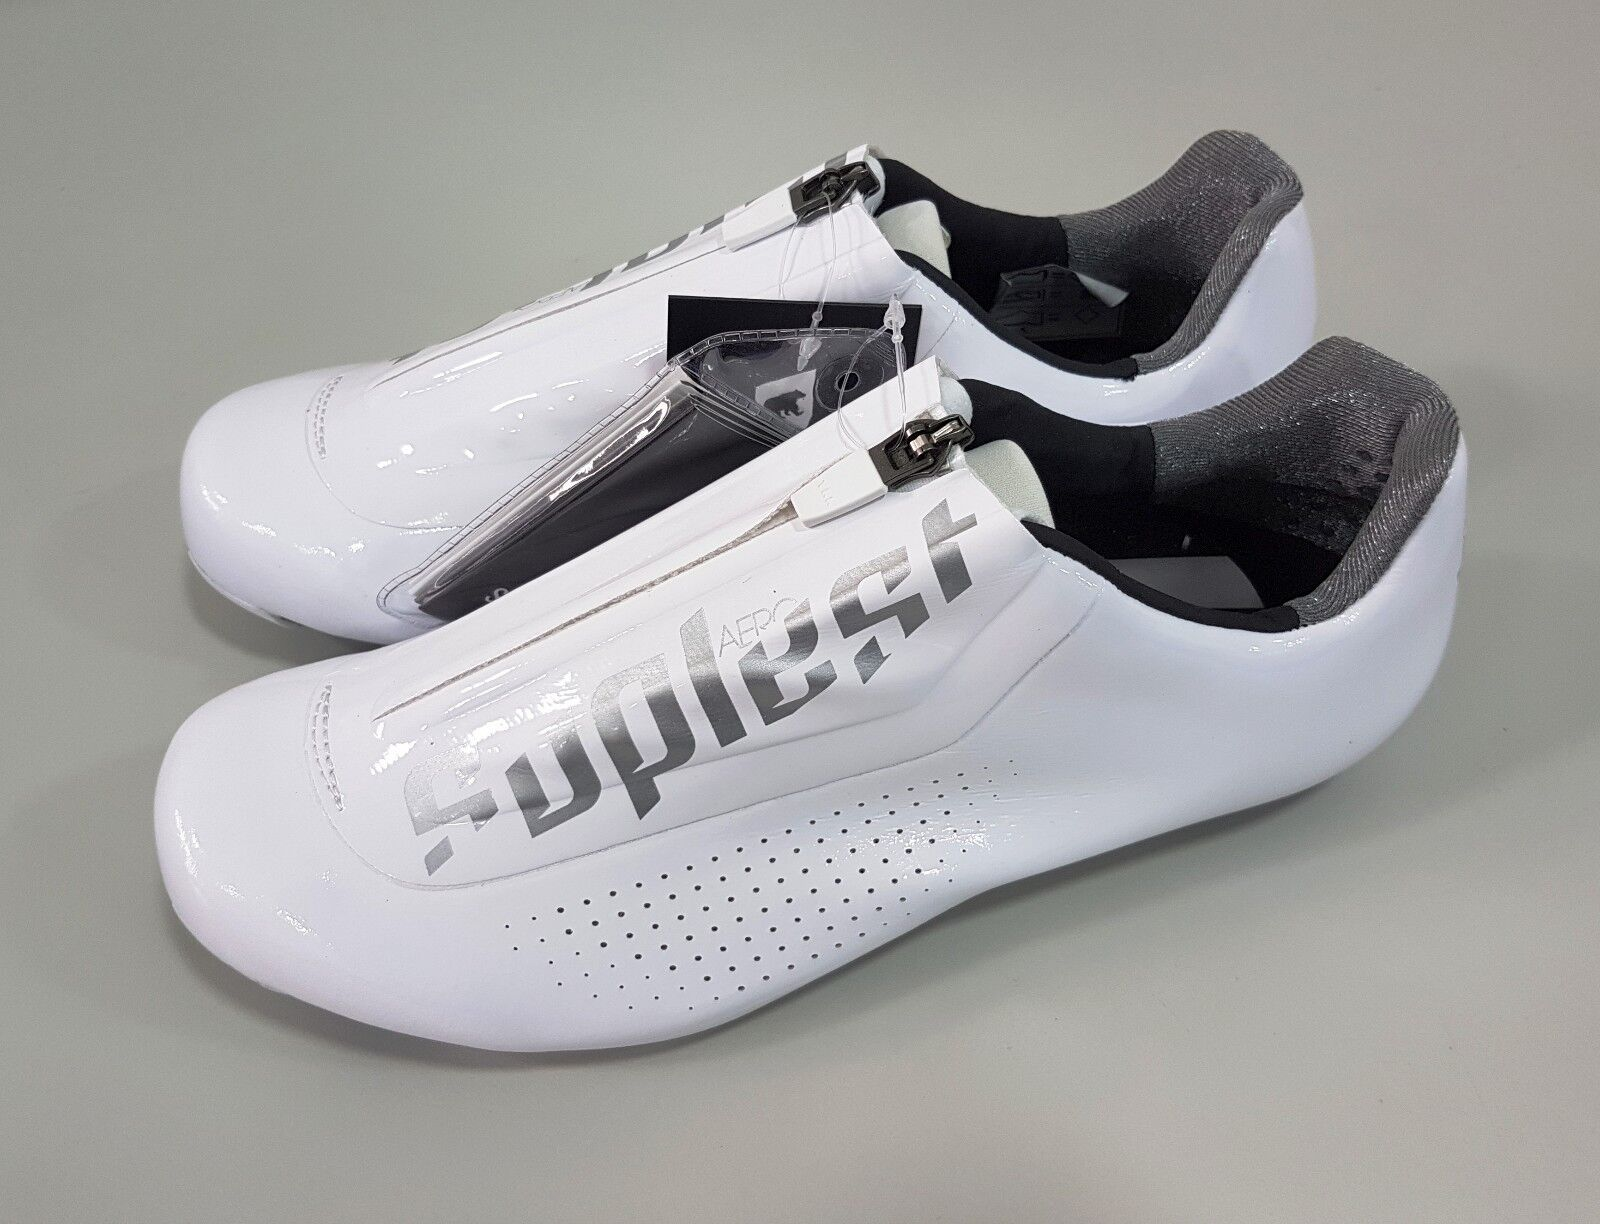 Suplest Aero Carbon Road Bike Cycling Road shoes White Size 40